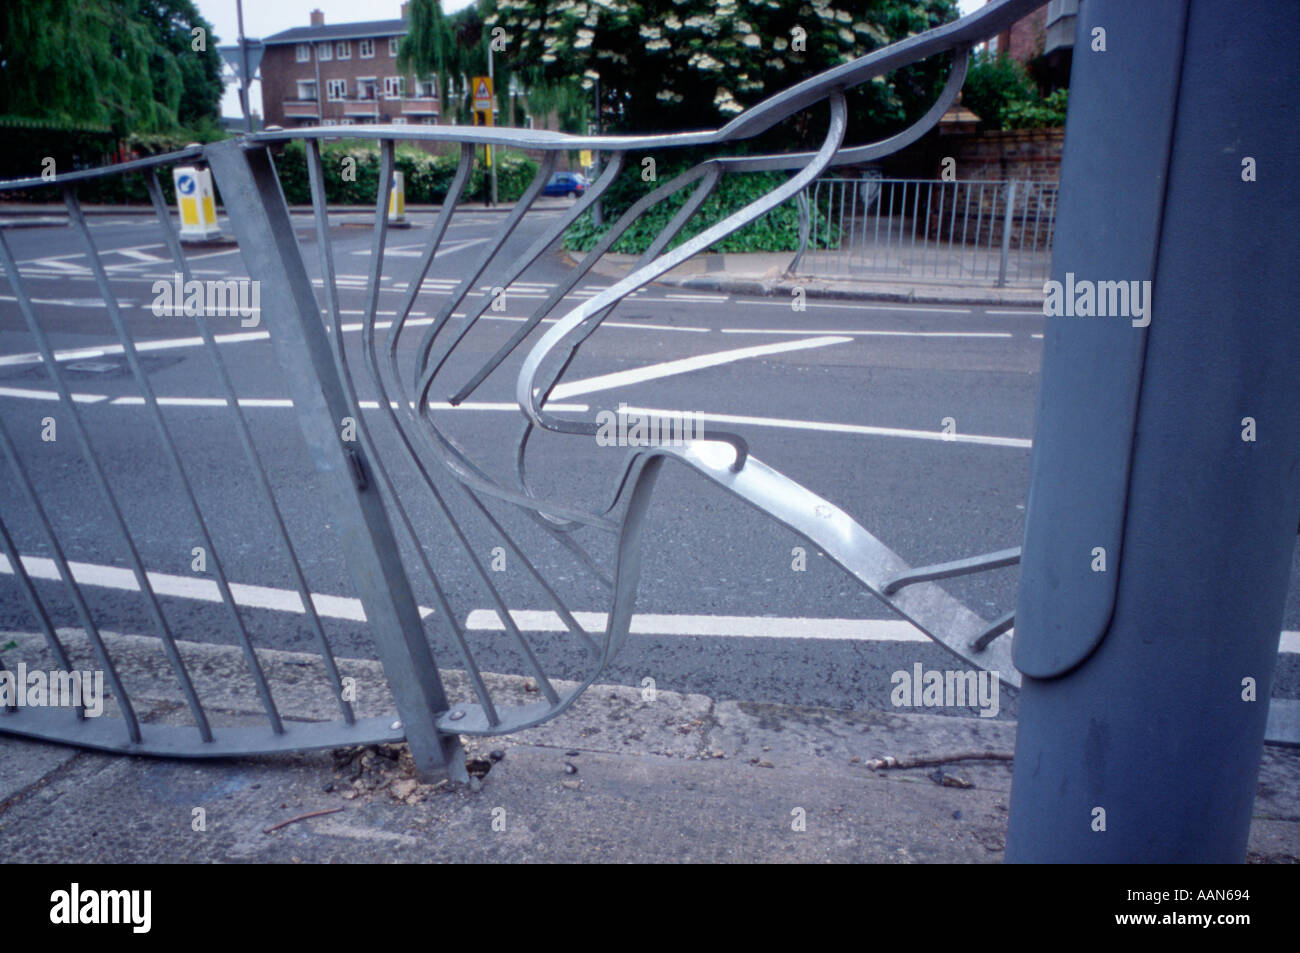 Buckled railings next to roadside after traffic accident